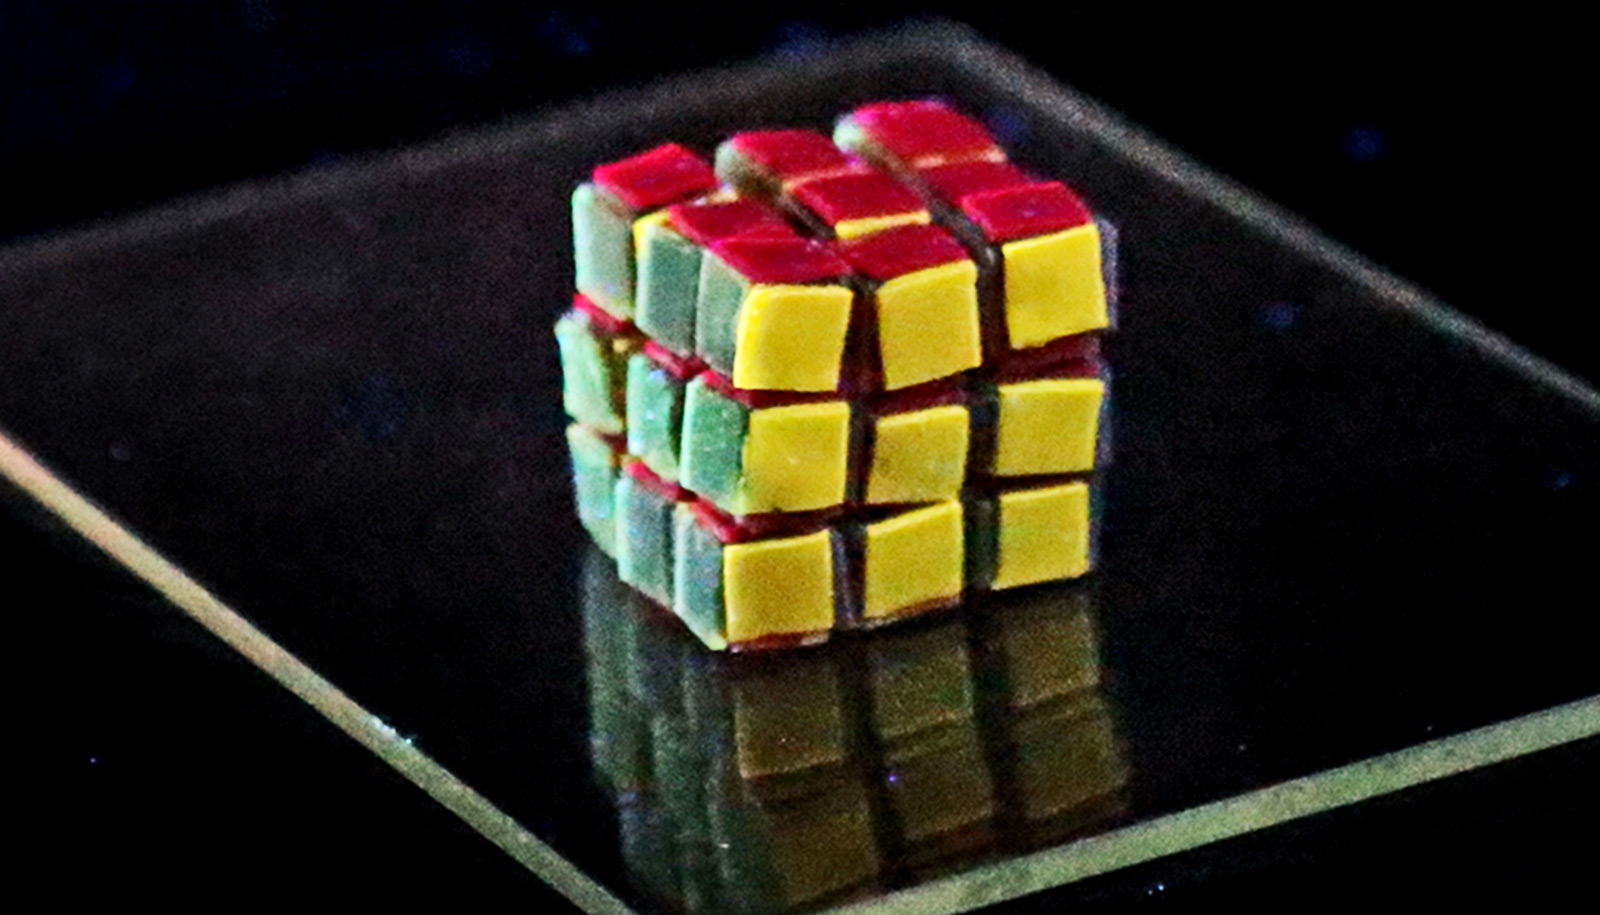 Squishy 'Rubik's Cube' could one day store tons of data